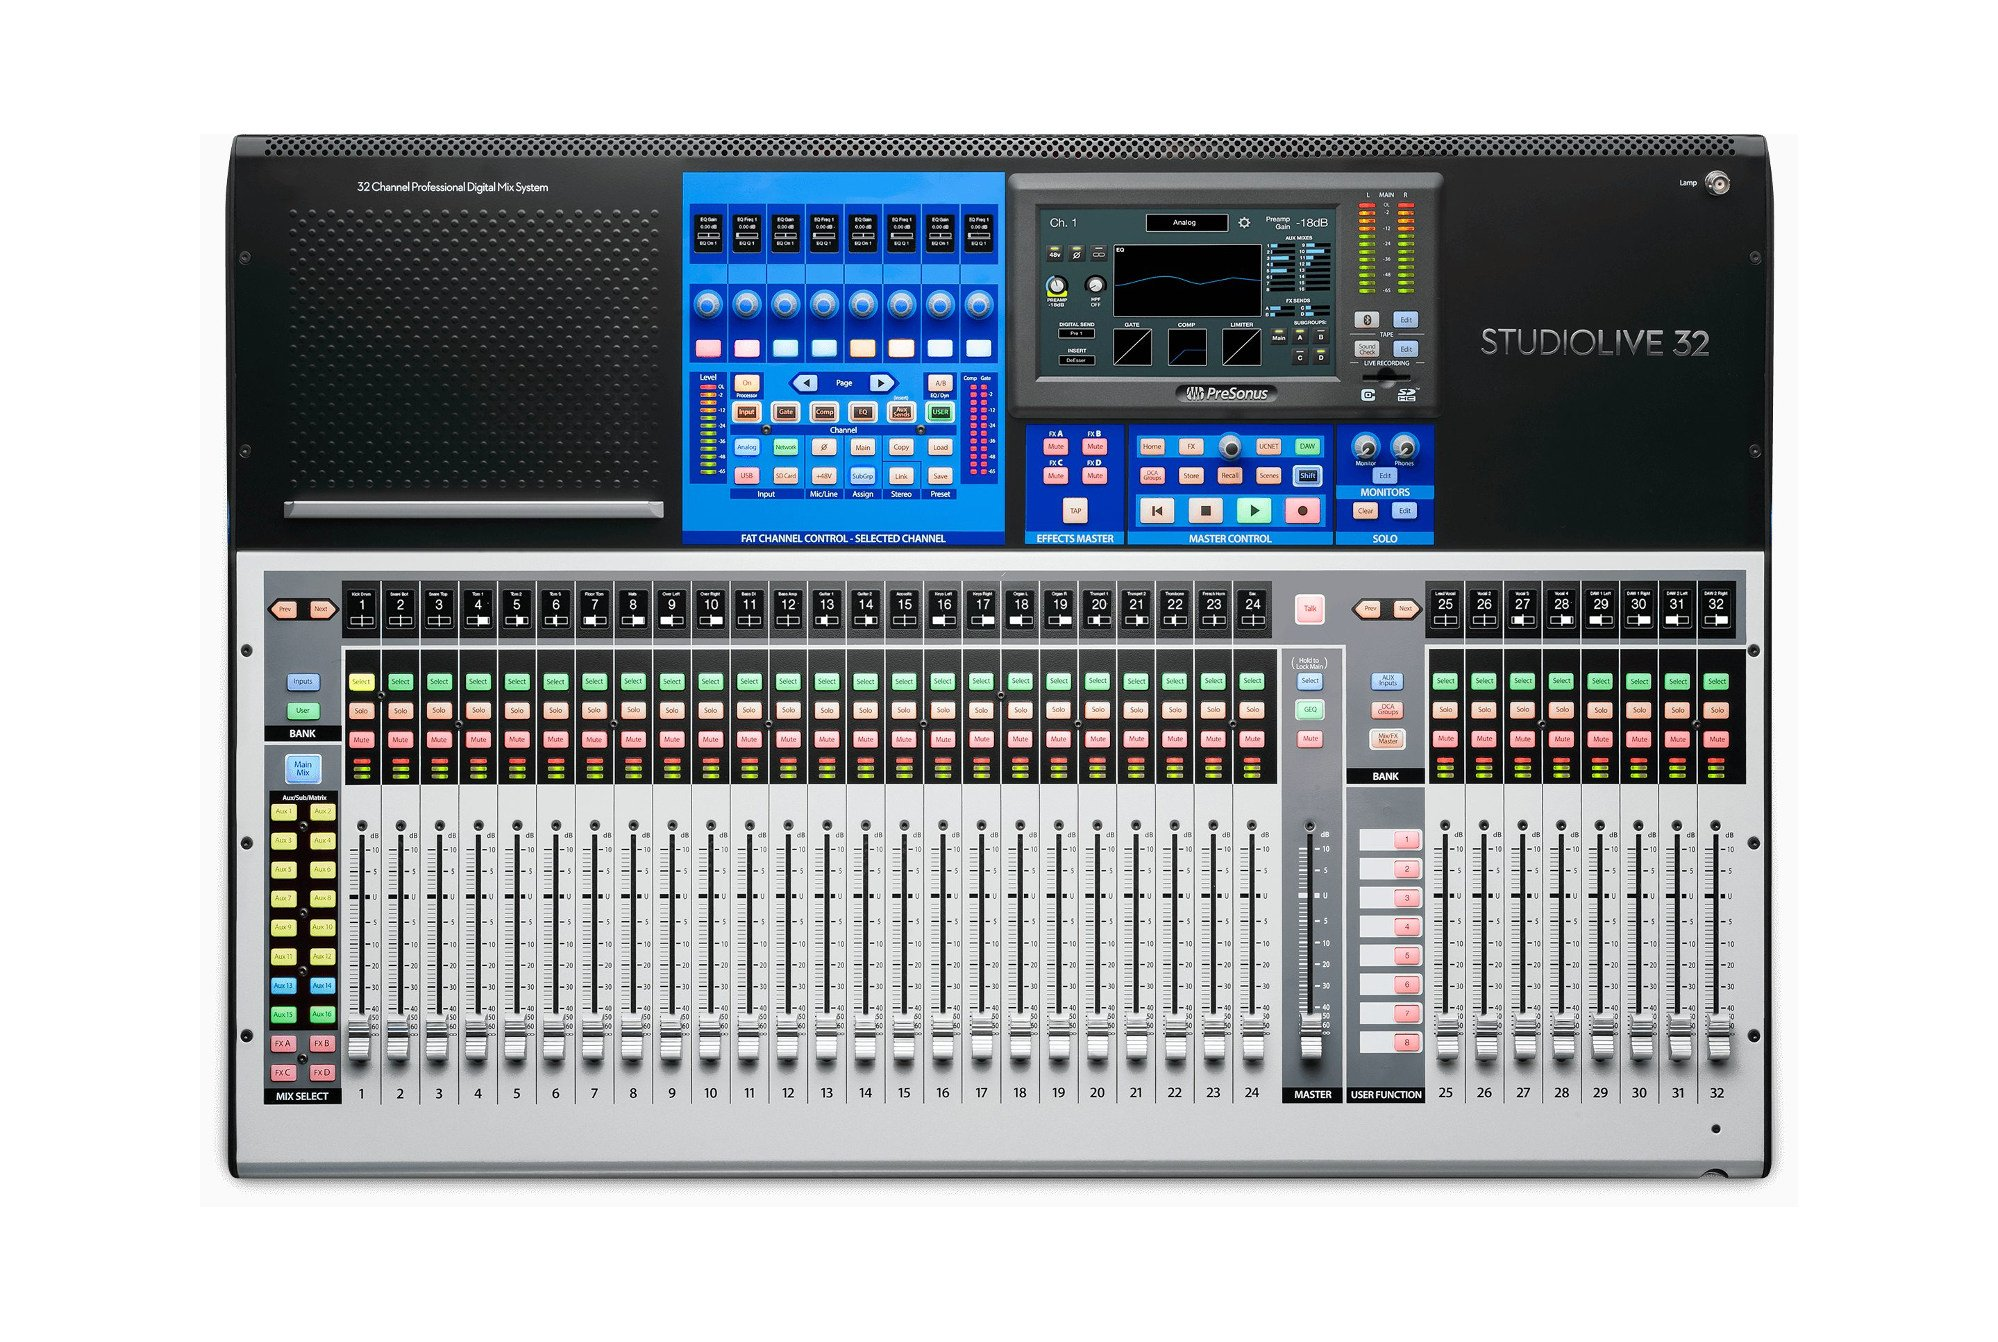 40-Input Digital Console/Recorder with 33 Motorized Faders